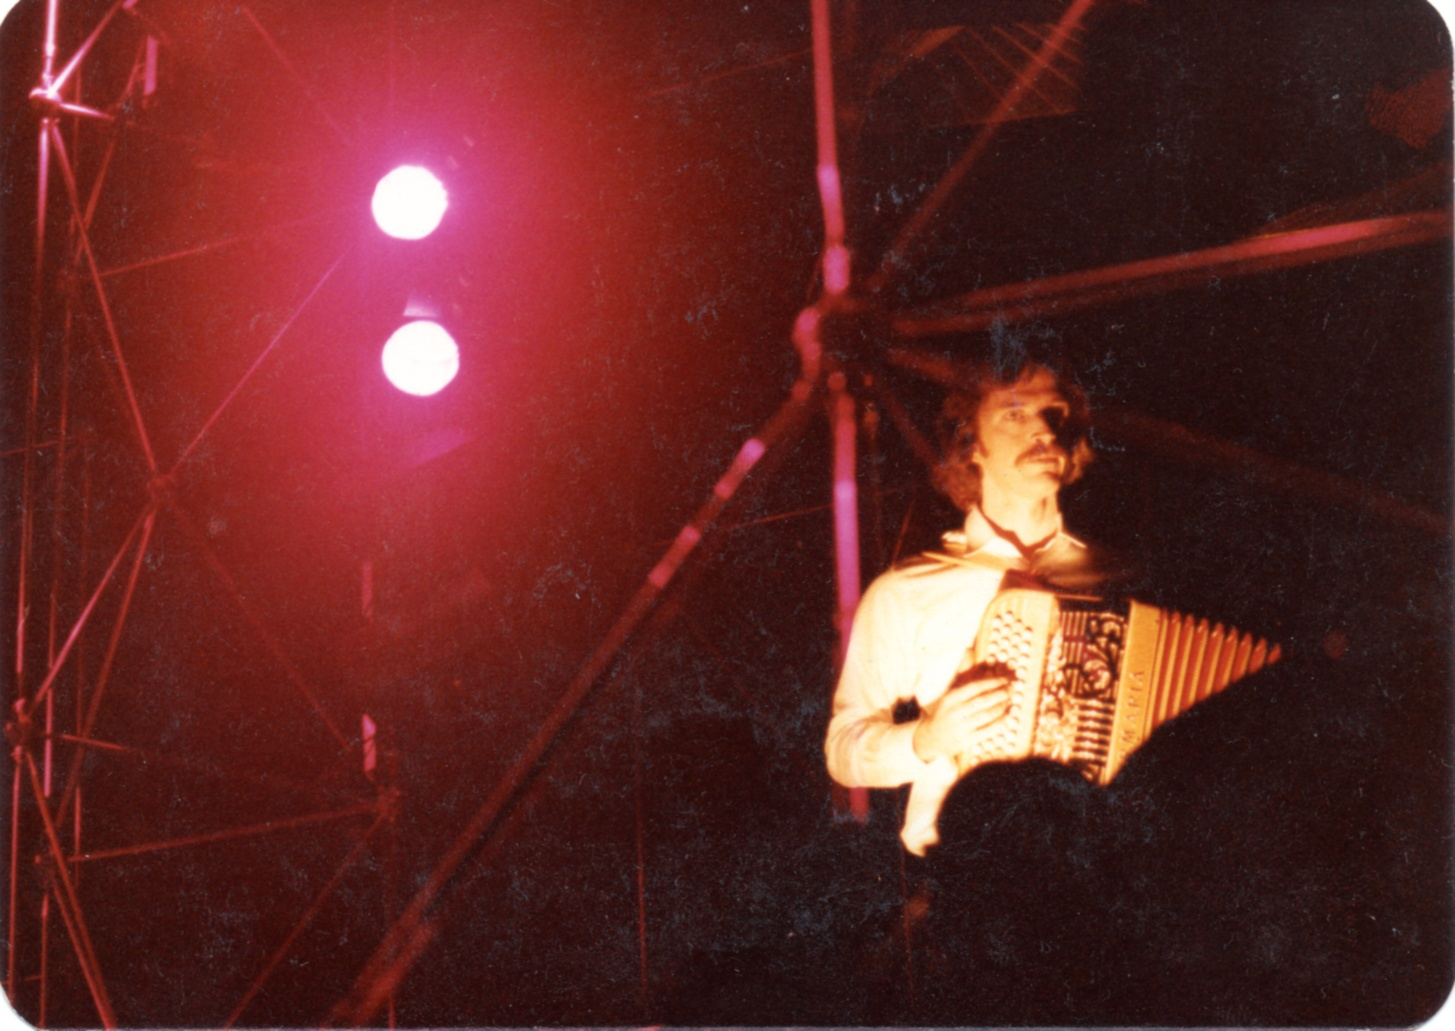 Playing accordion in Shanghai during the concerts